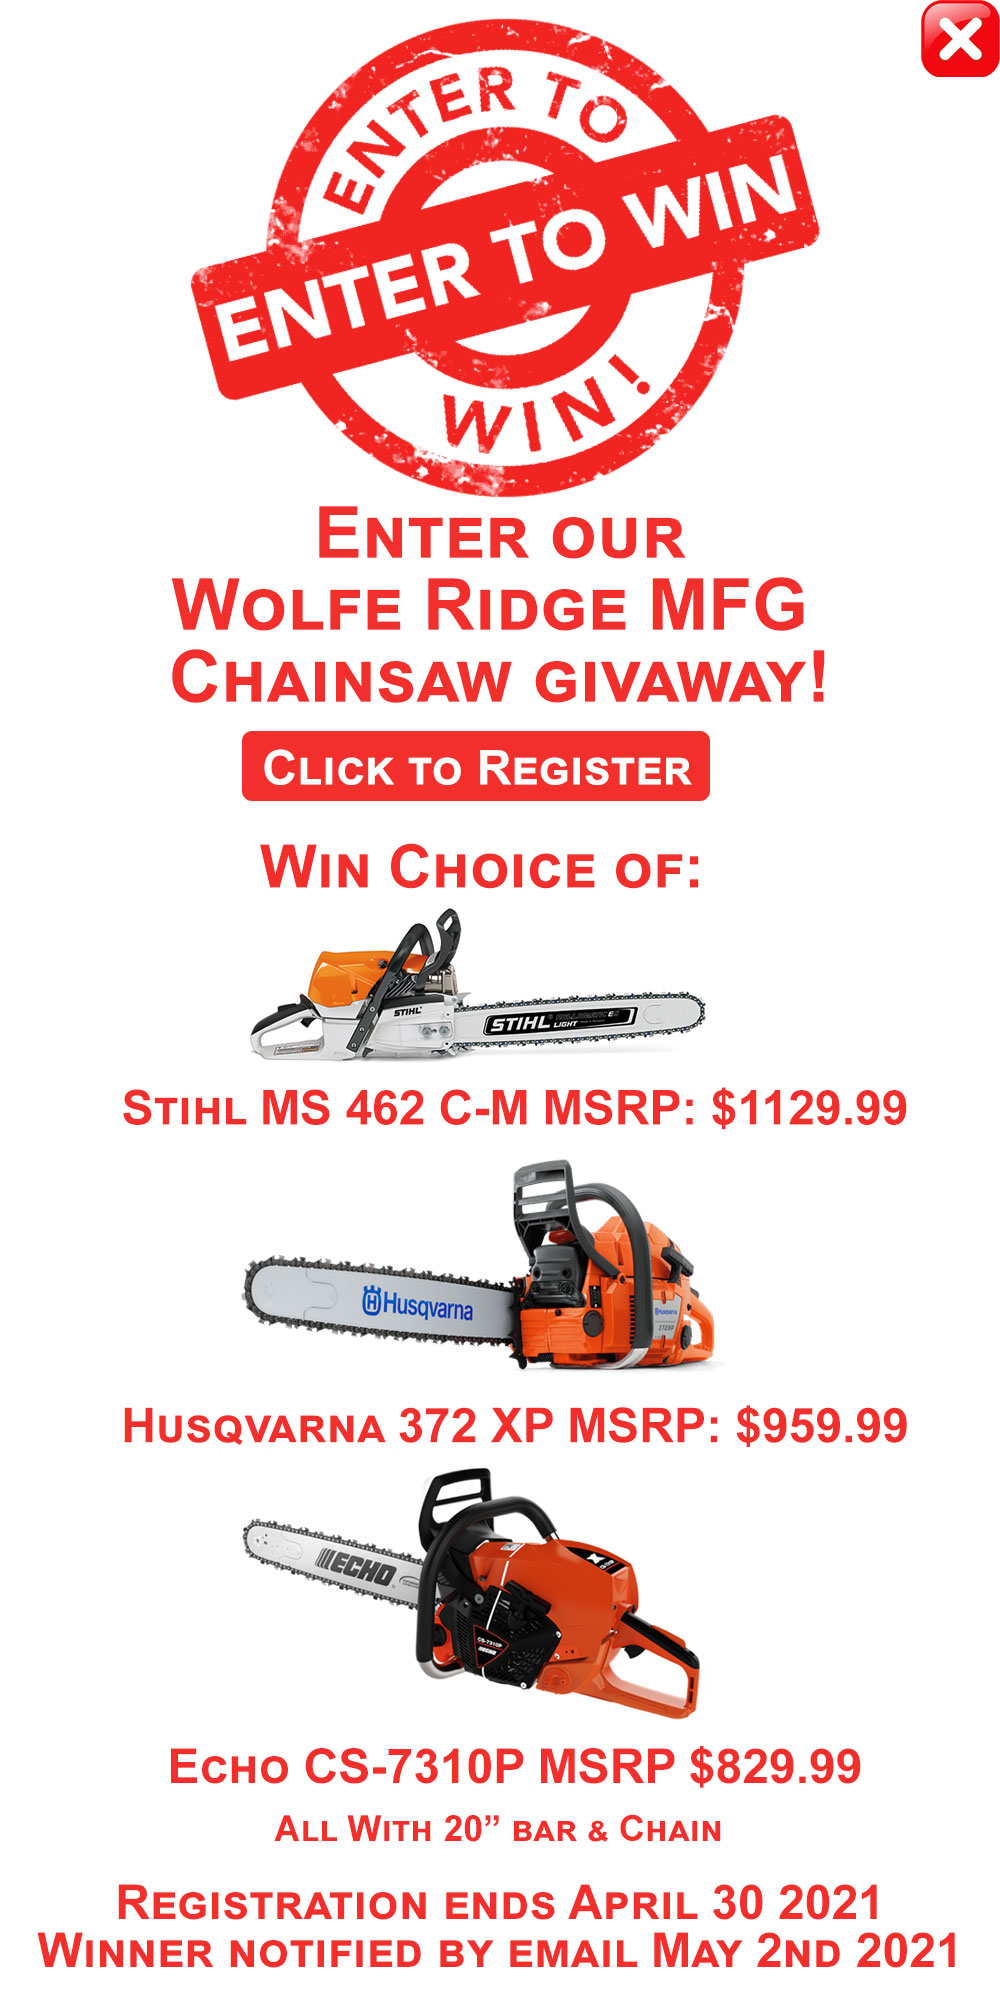 Register for Wolfe Ridge MFG Chainsaw Giveaway